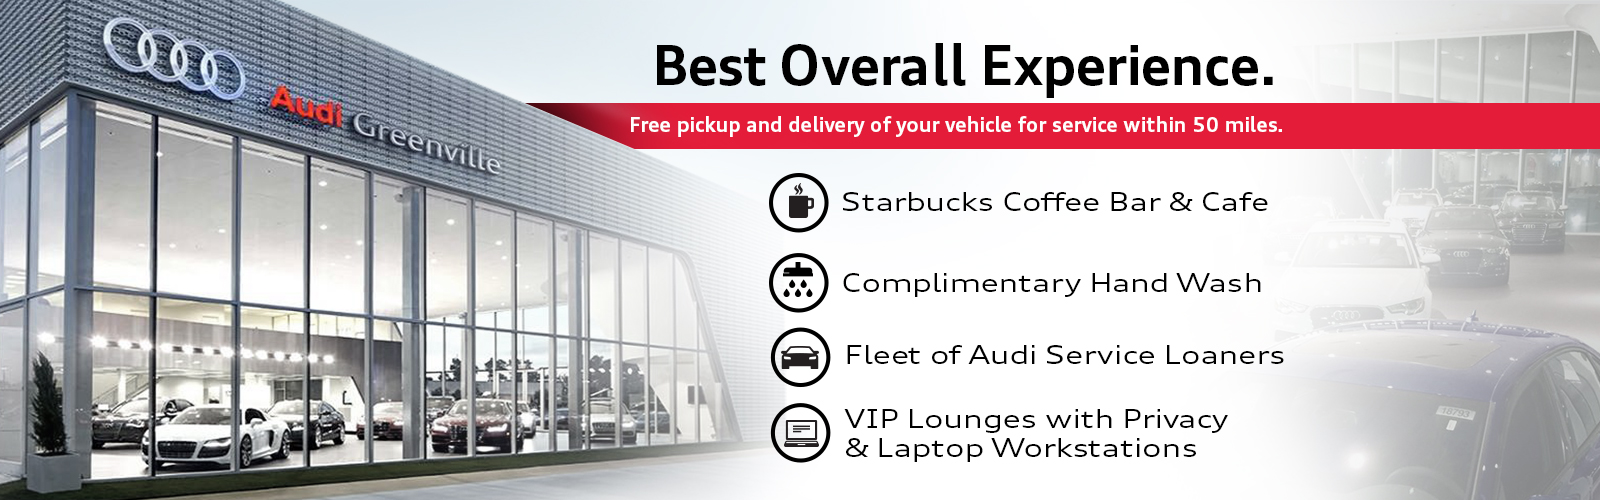 Best Overall Experience. Free pickup and delivery of your vehicle for service within 50 miles.